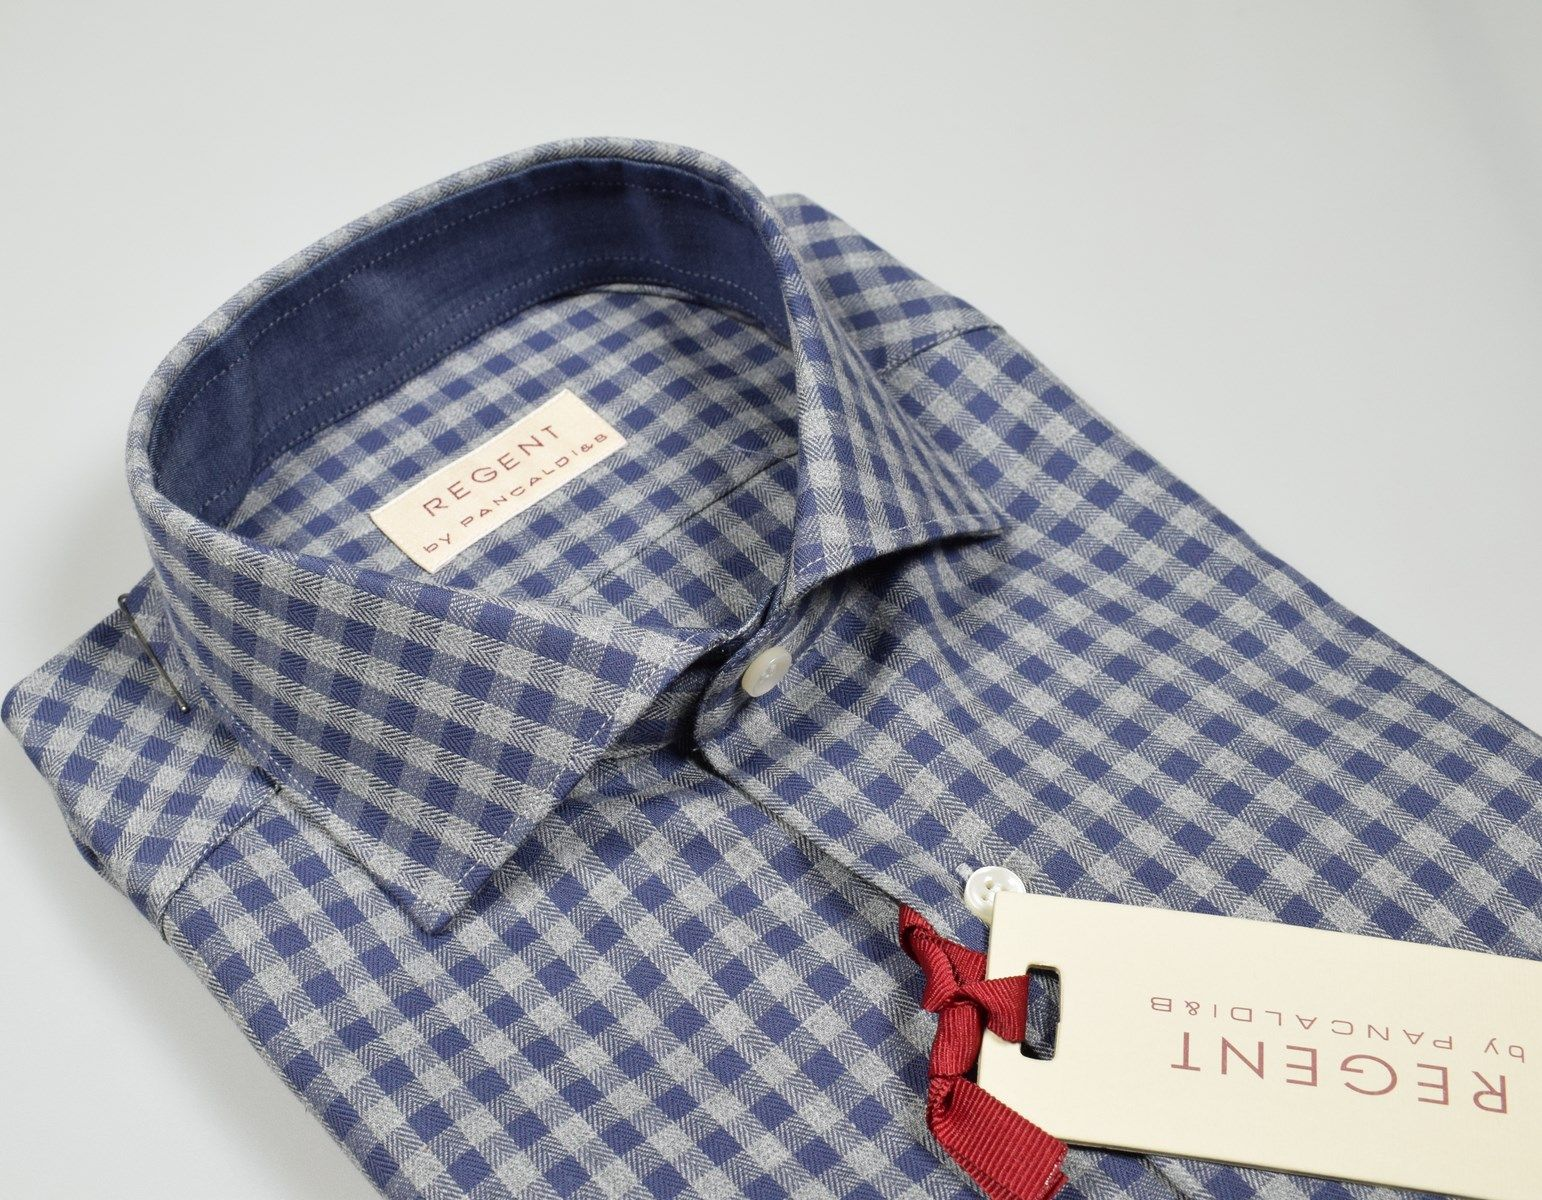 lowest price 87e06 74d16 Blue and grey pancaldi shirt slim fit shaved flannel ...